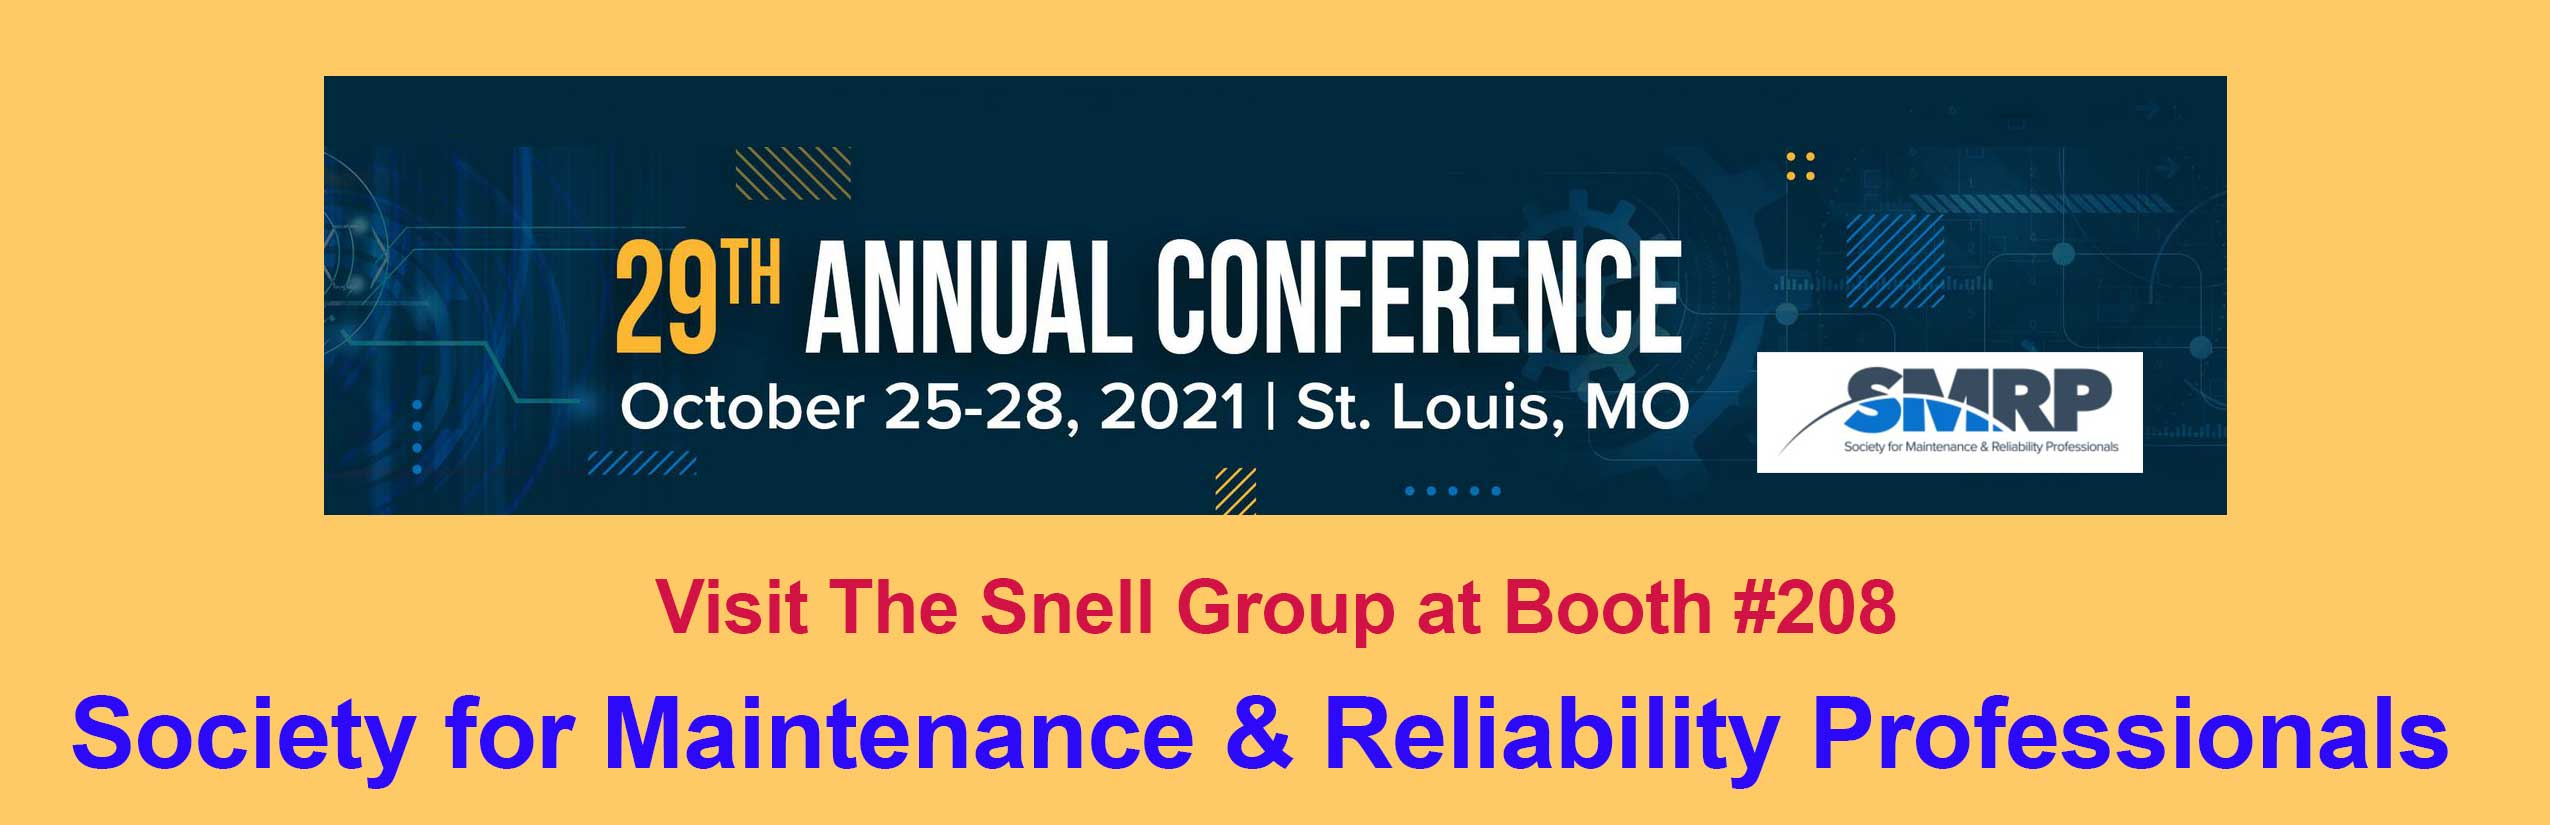 2021 SMRP Conference